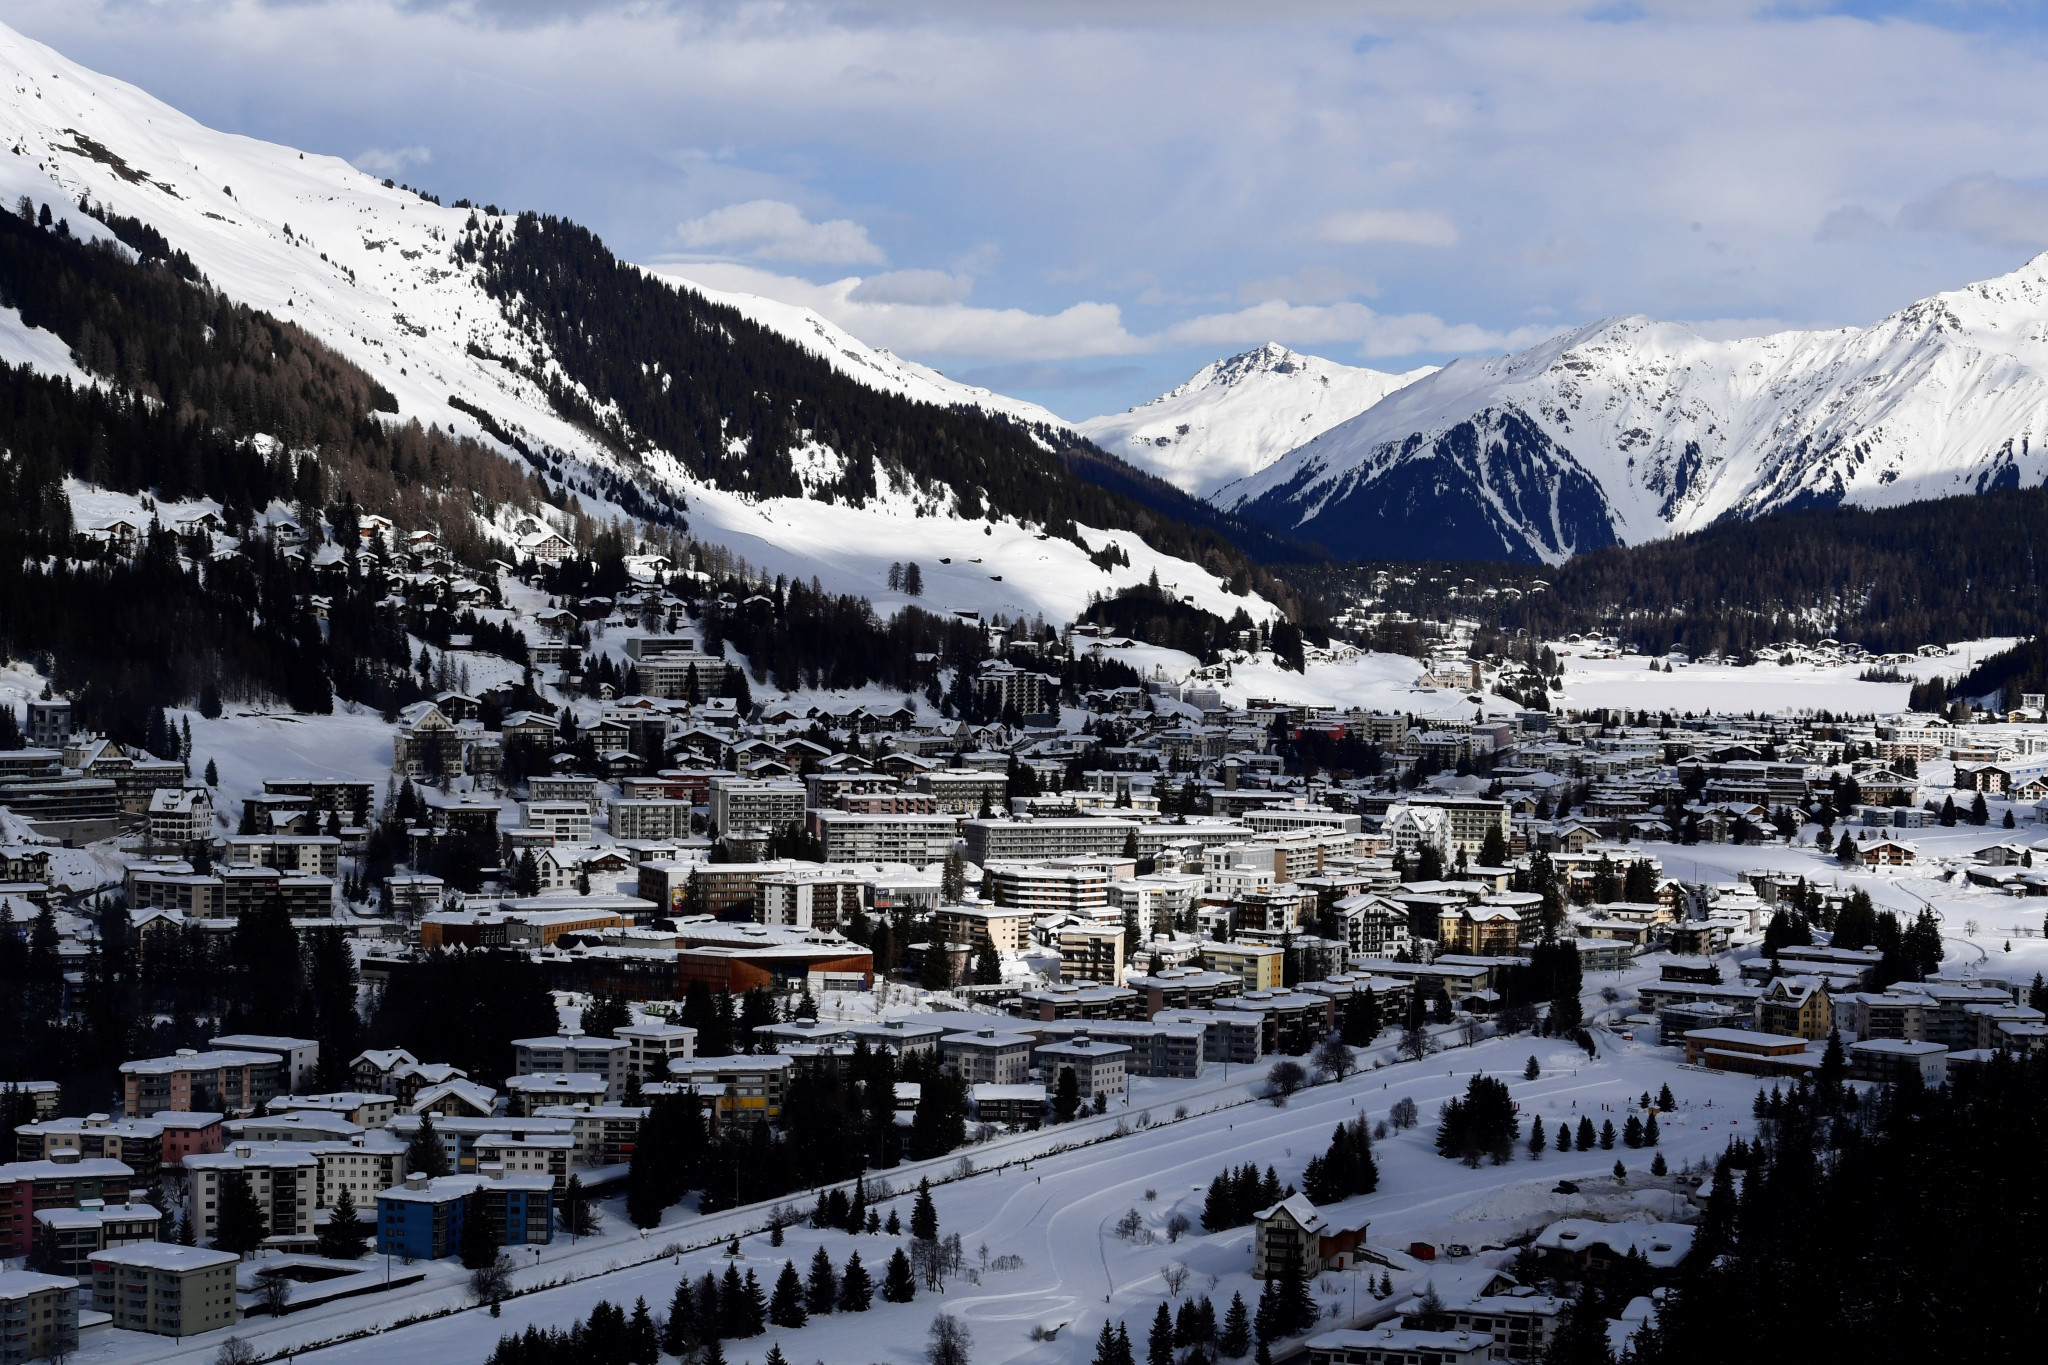 A parallel event in the FIS Alpine Ski World Cup in Davos has been postponed until 2022 ©Getty Images